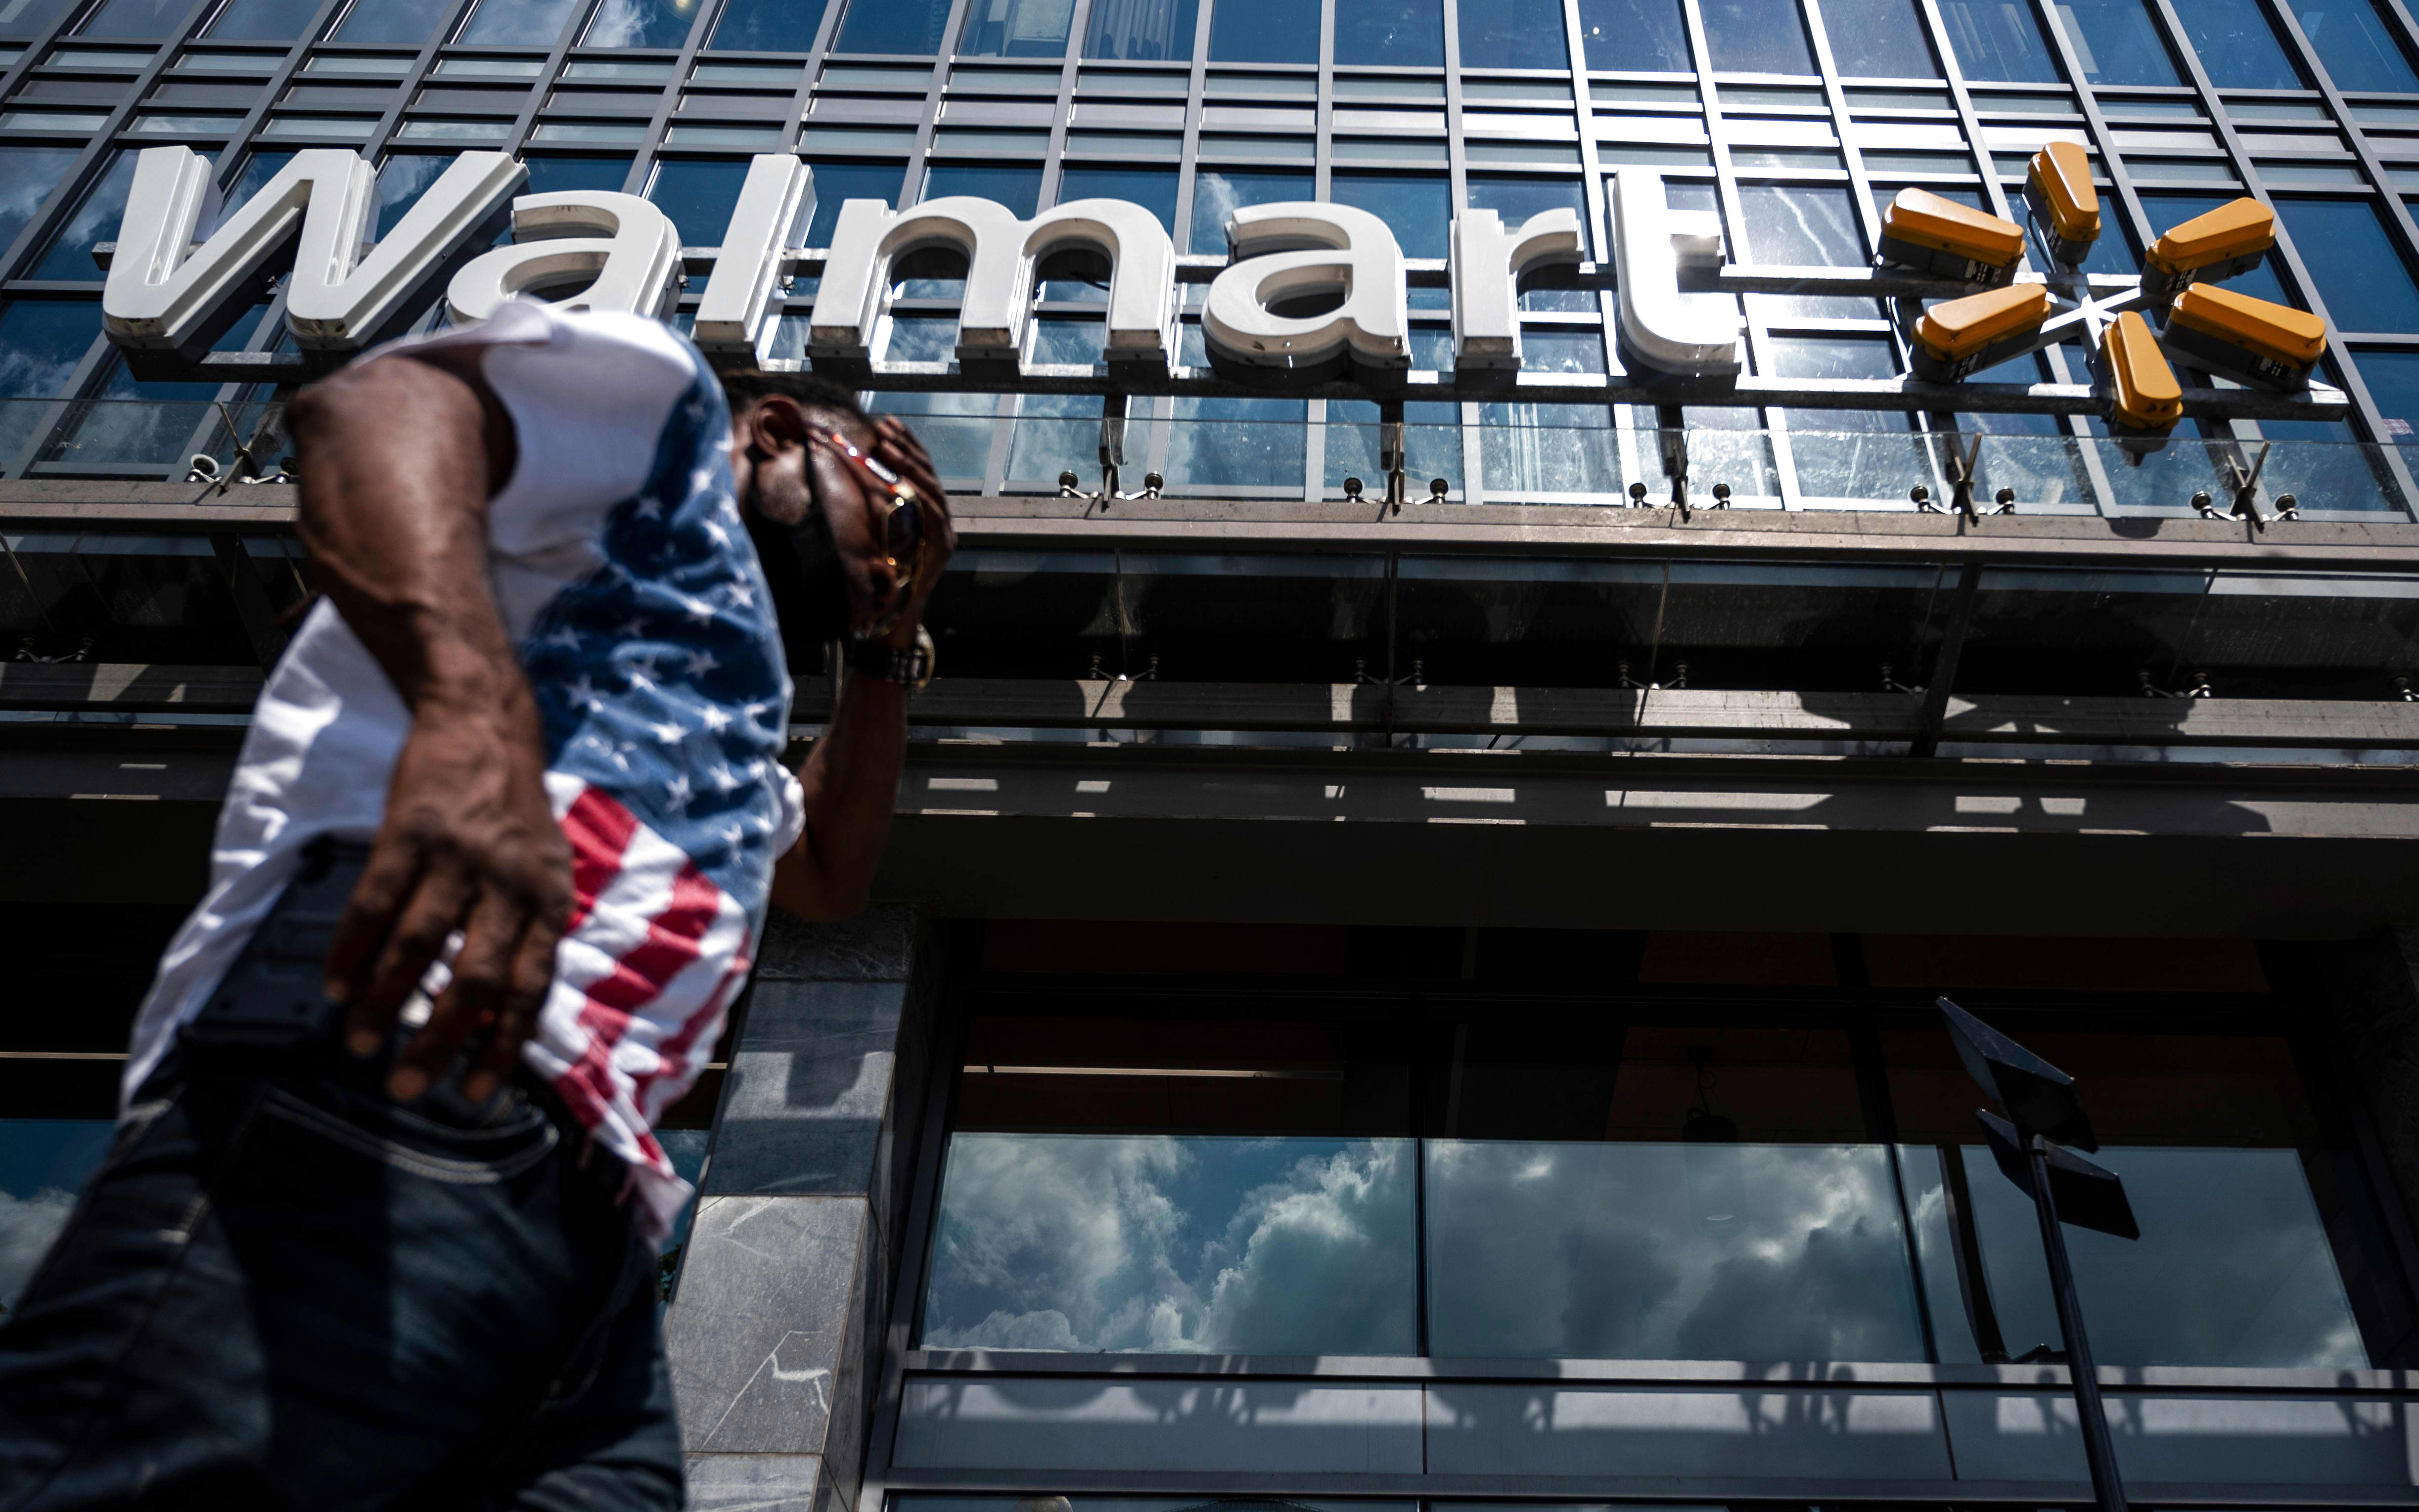 Walmart cuts hundreds of corporate roles, report says